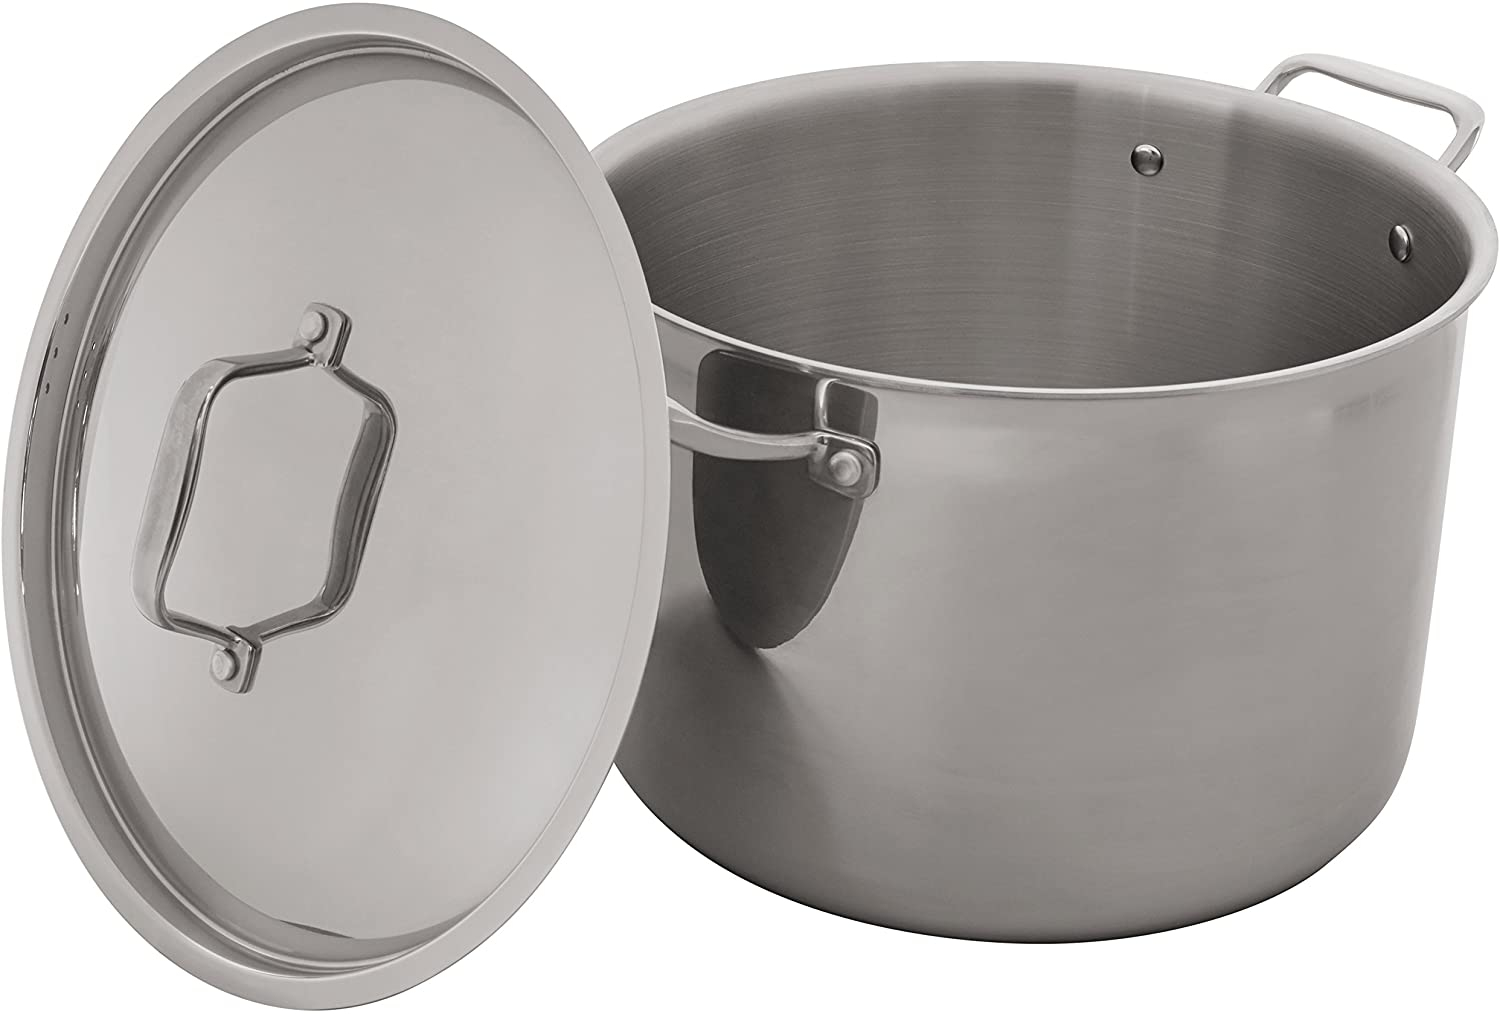 DHgate Brand – Stone & Beam Tri-Ply Stainless Steel Stockpot, 12-Quart